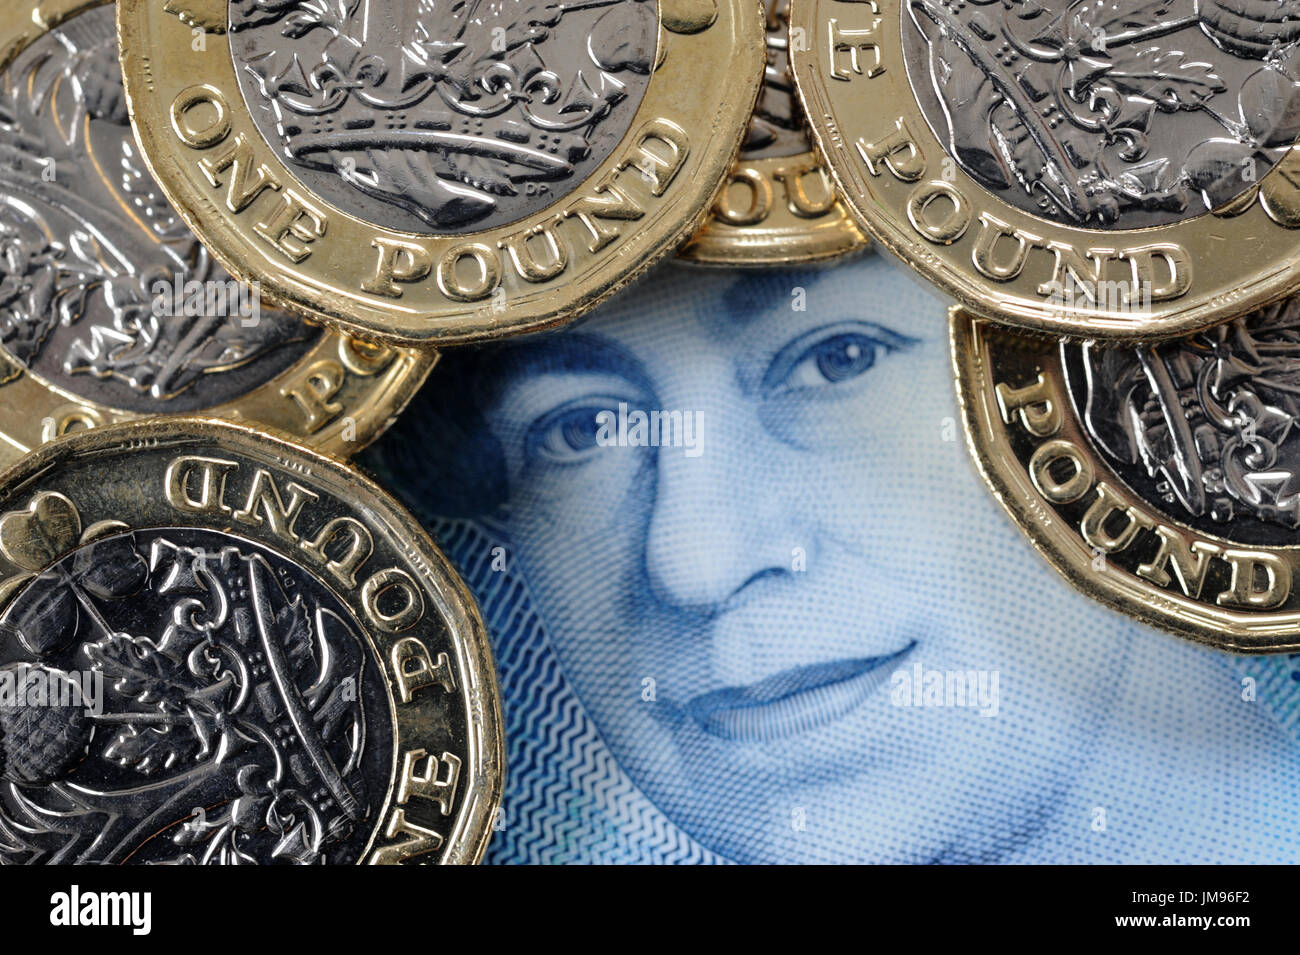 NEW ONE POUND COINS WITH QUEENS HEAD ON NEW FIVE POUND NOTE RE FINANCE BREXIT SAVERS SAVINGS HOUSEHOLD BUDGETS INFLATION Stock Photo